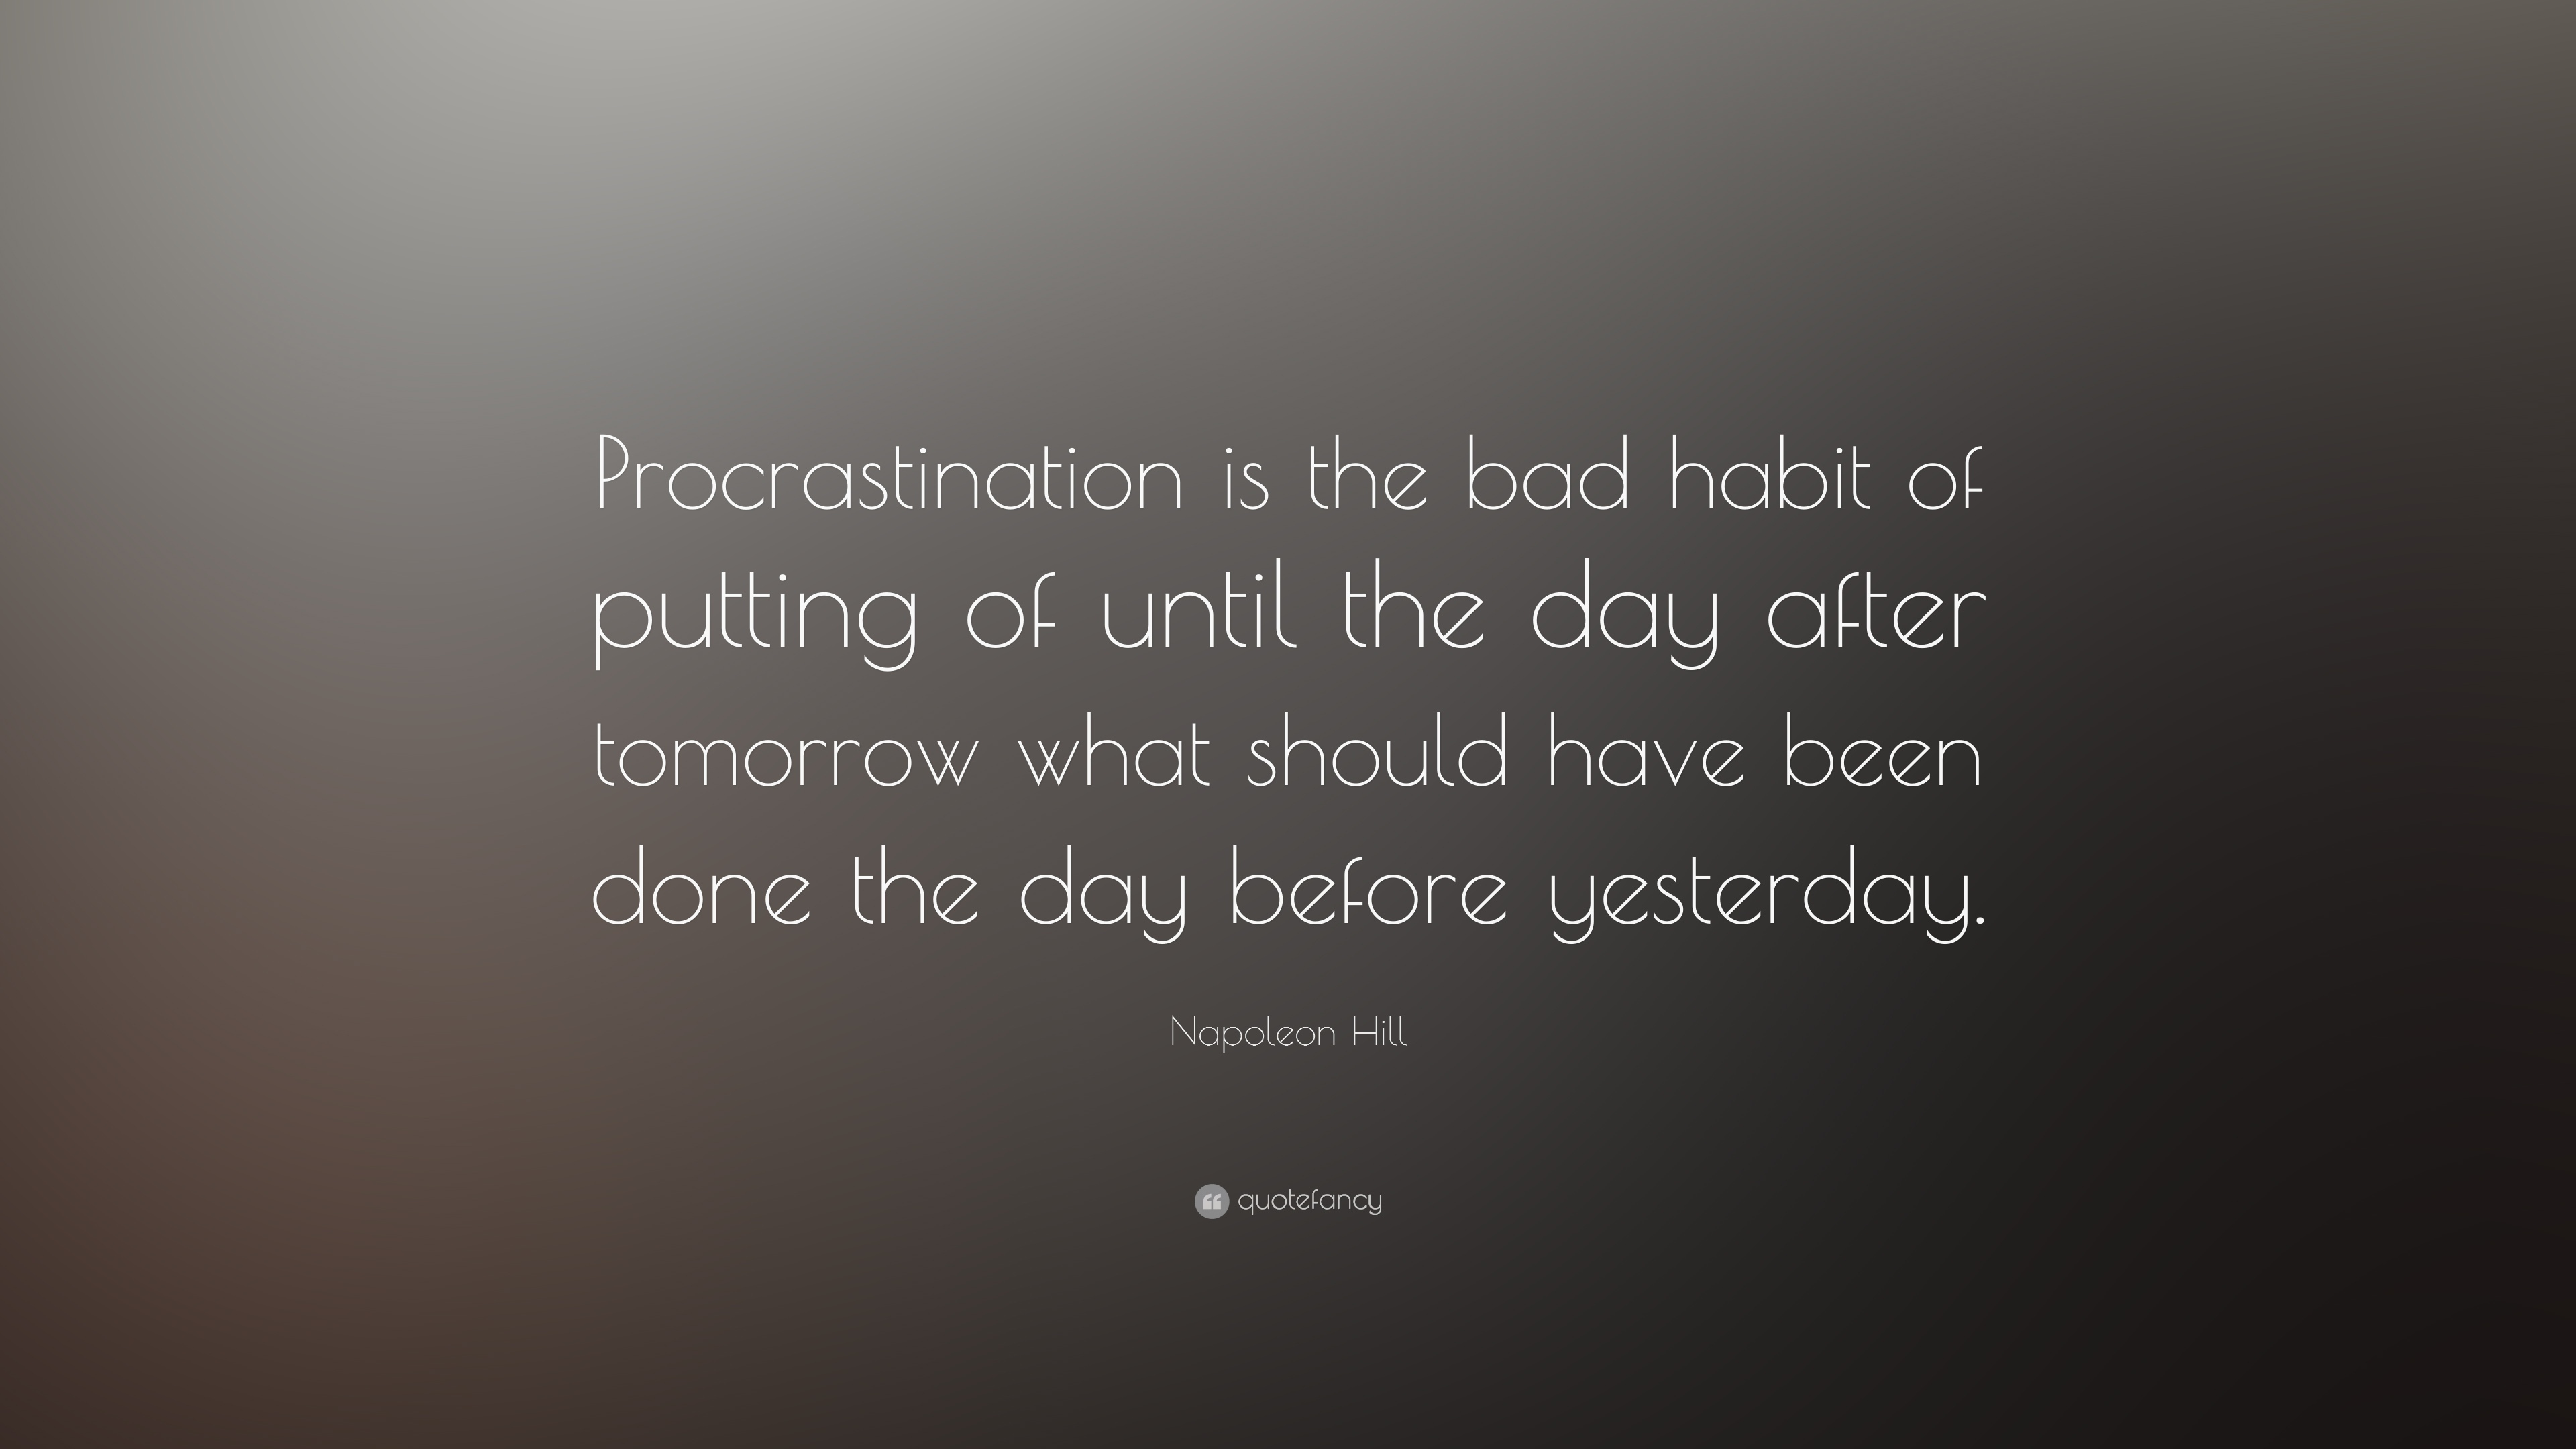 Procrastination is the bad habit of putting of until the day after tomorrow what should have been done the day before yesterday. Napoleon Hill